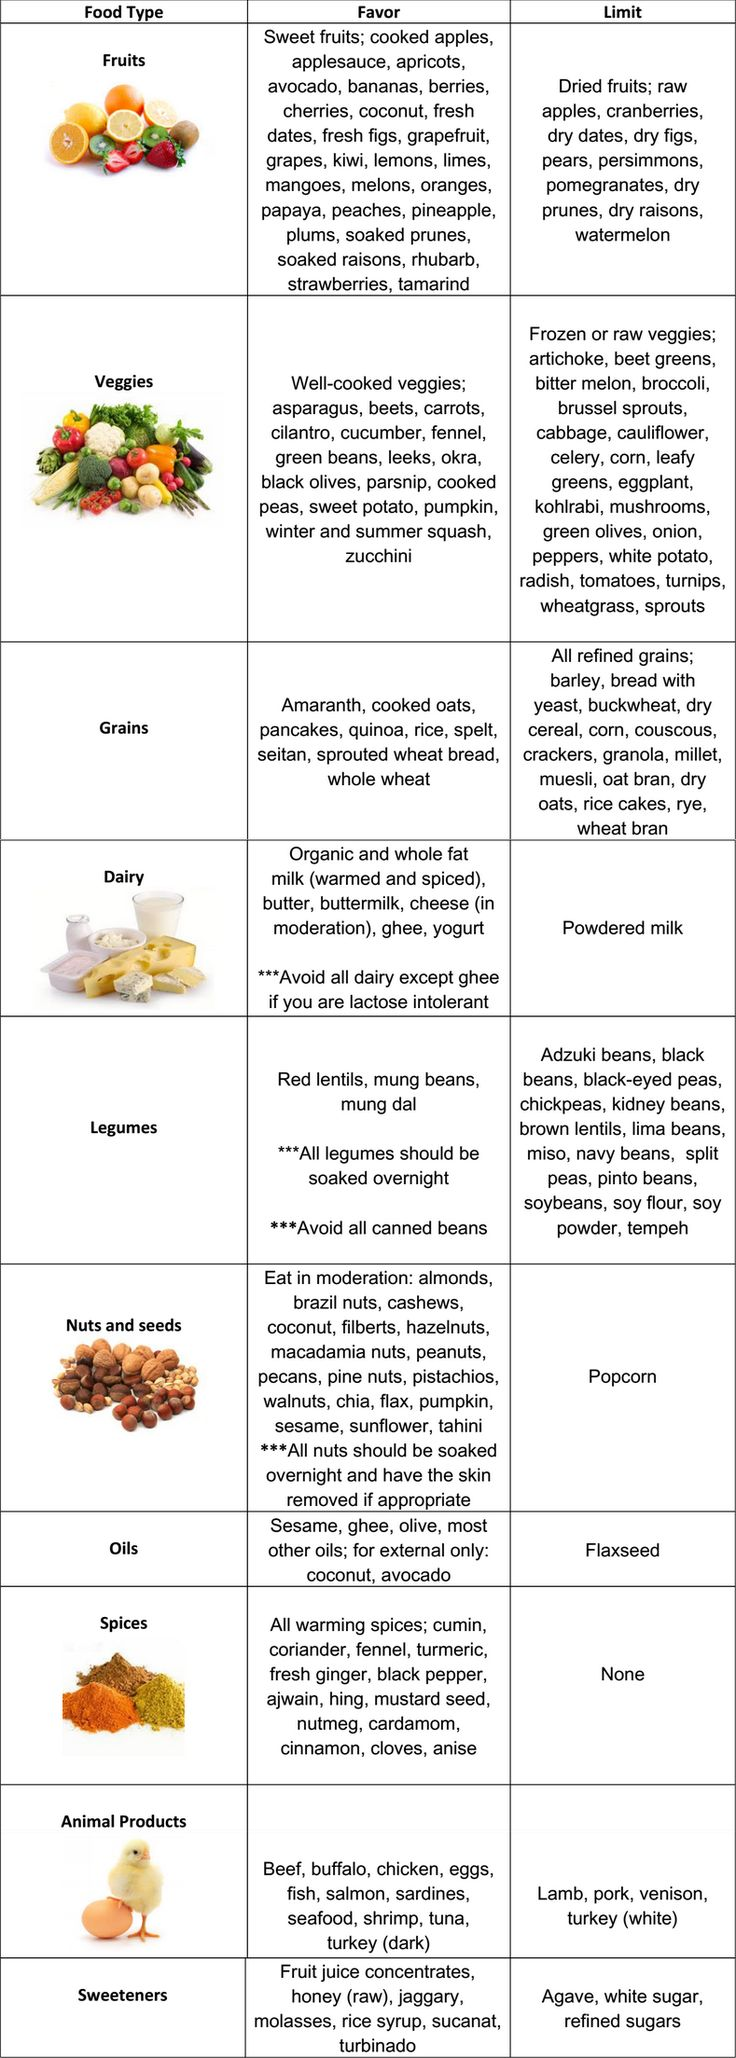 Vata Diet Chart: A simple and easy to use dietary chart for Vata types.